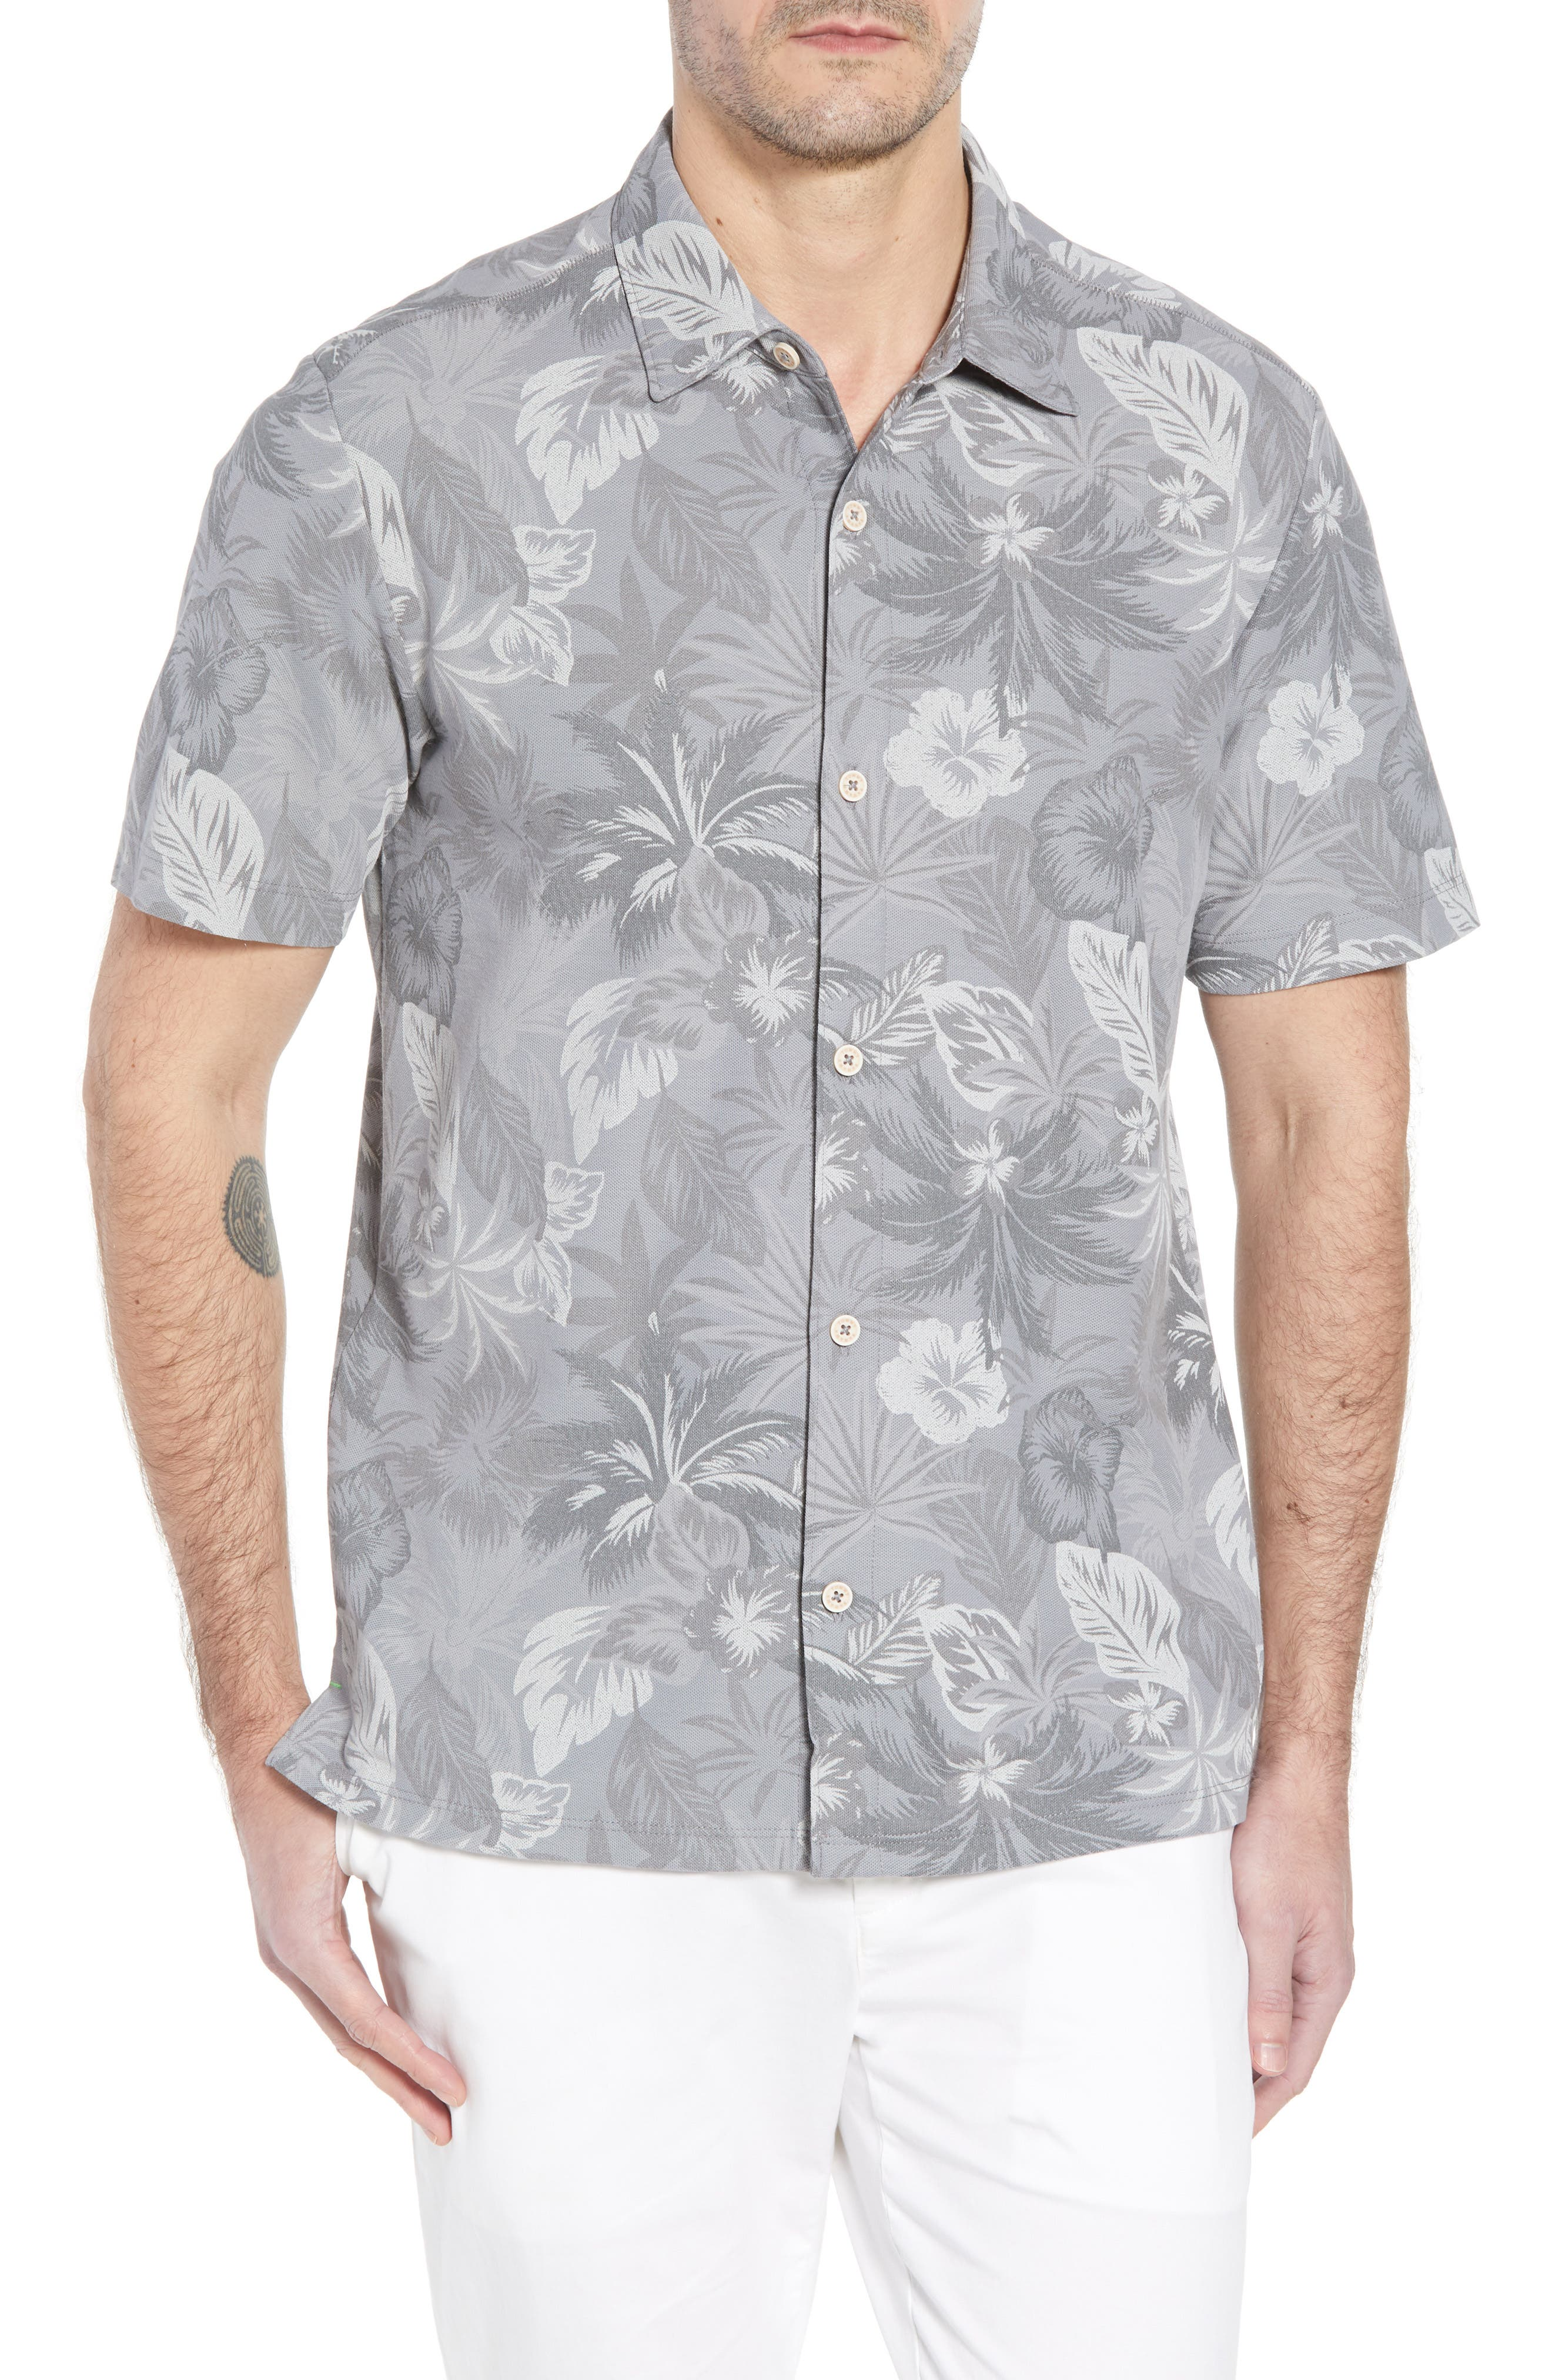 Fuego Floral Camp Shirt,                         Main,                         color, 050